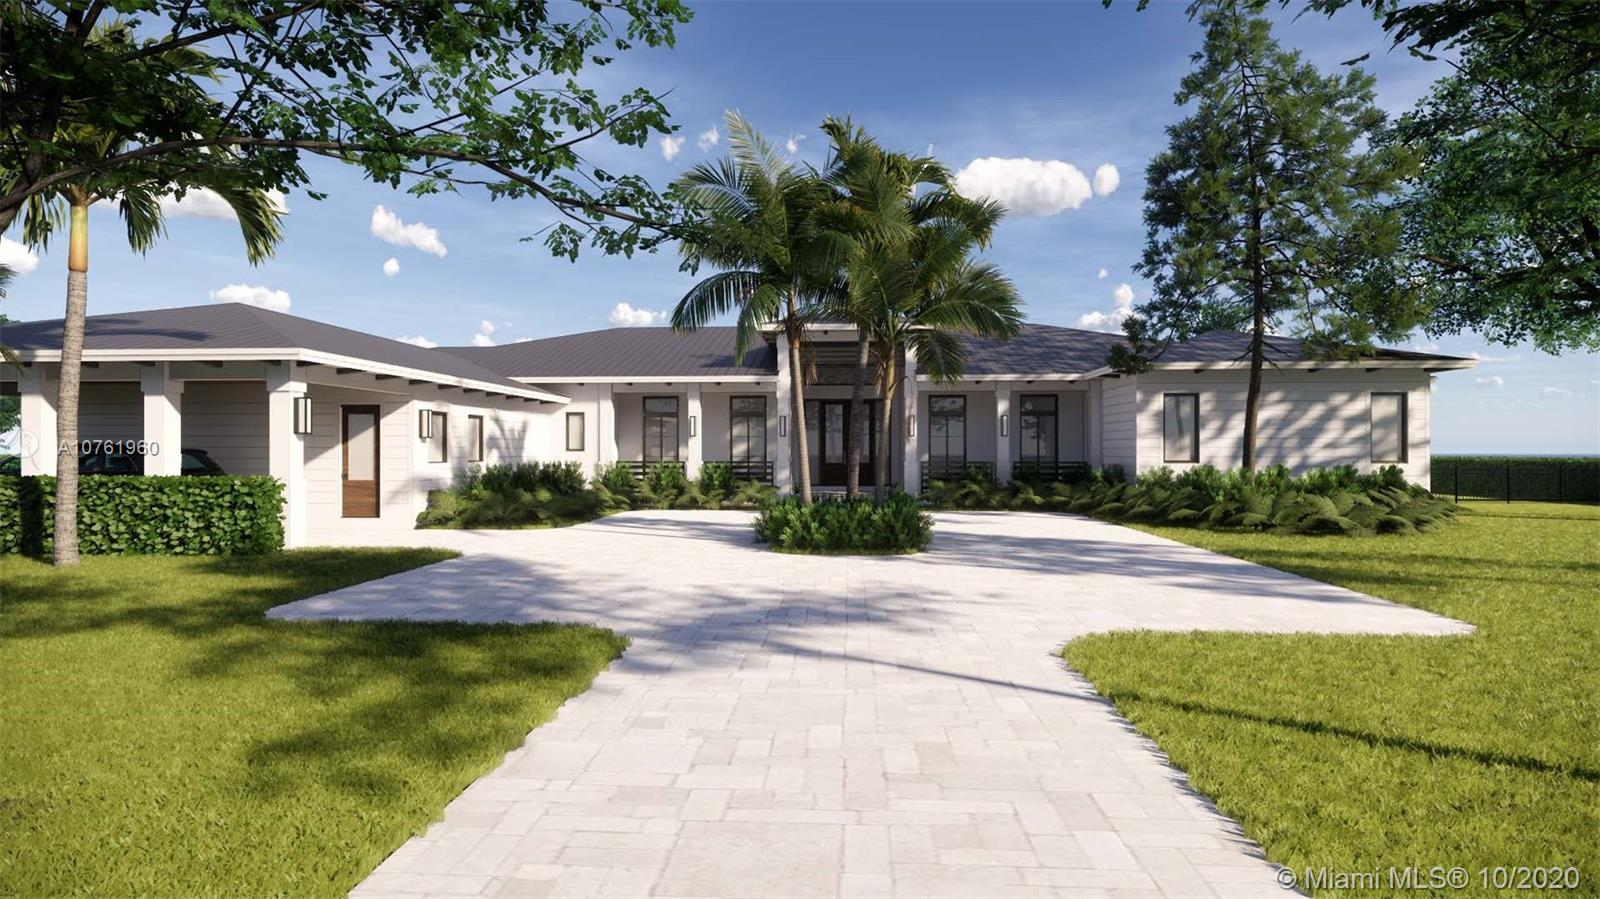 This custom designed new construction home showcases contemporary Key West architecture while delivering timeless style and legendary Hollub quality and attention to detail. The home features 6 bedrooms, 71/2 baths, a bonus room for ultimate flexibility, family room & lounge with custom bar & fireplace, & 3 garages or 2 + a striking carport. Square footage: 9,093, Adj.: 7,667; Living: 6670. This unique smart home offers sprawling spaces for family gatherings and entertaining. Interior design is custom curated with the ability to incorporate your preferences at early construction phases. The sophisticated construction is offset with a lush vista, summer kitchen, pool and spa area w/ sauna & steam room for the ultimate South Florida living experience. Generator.